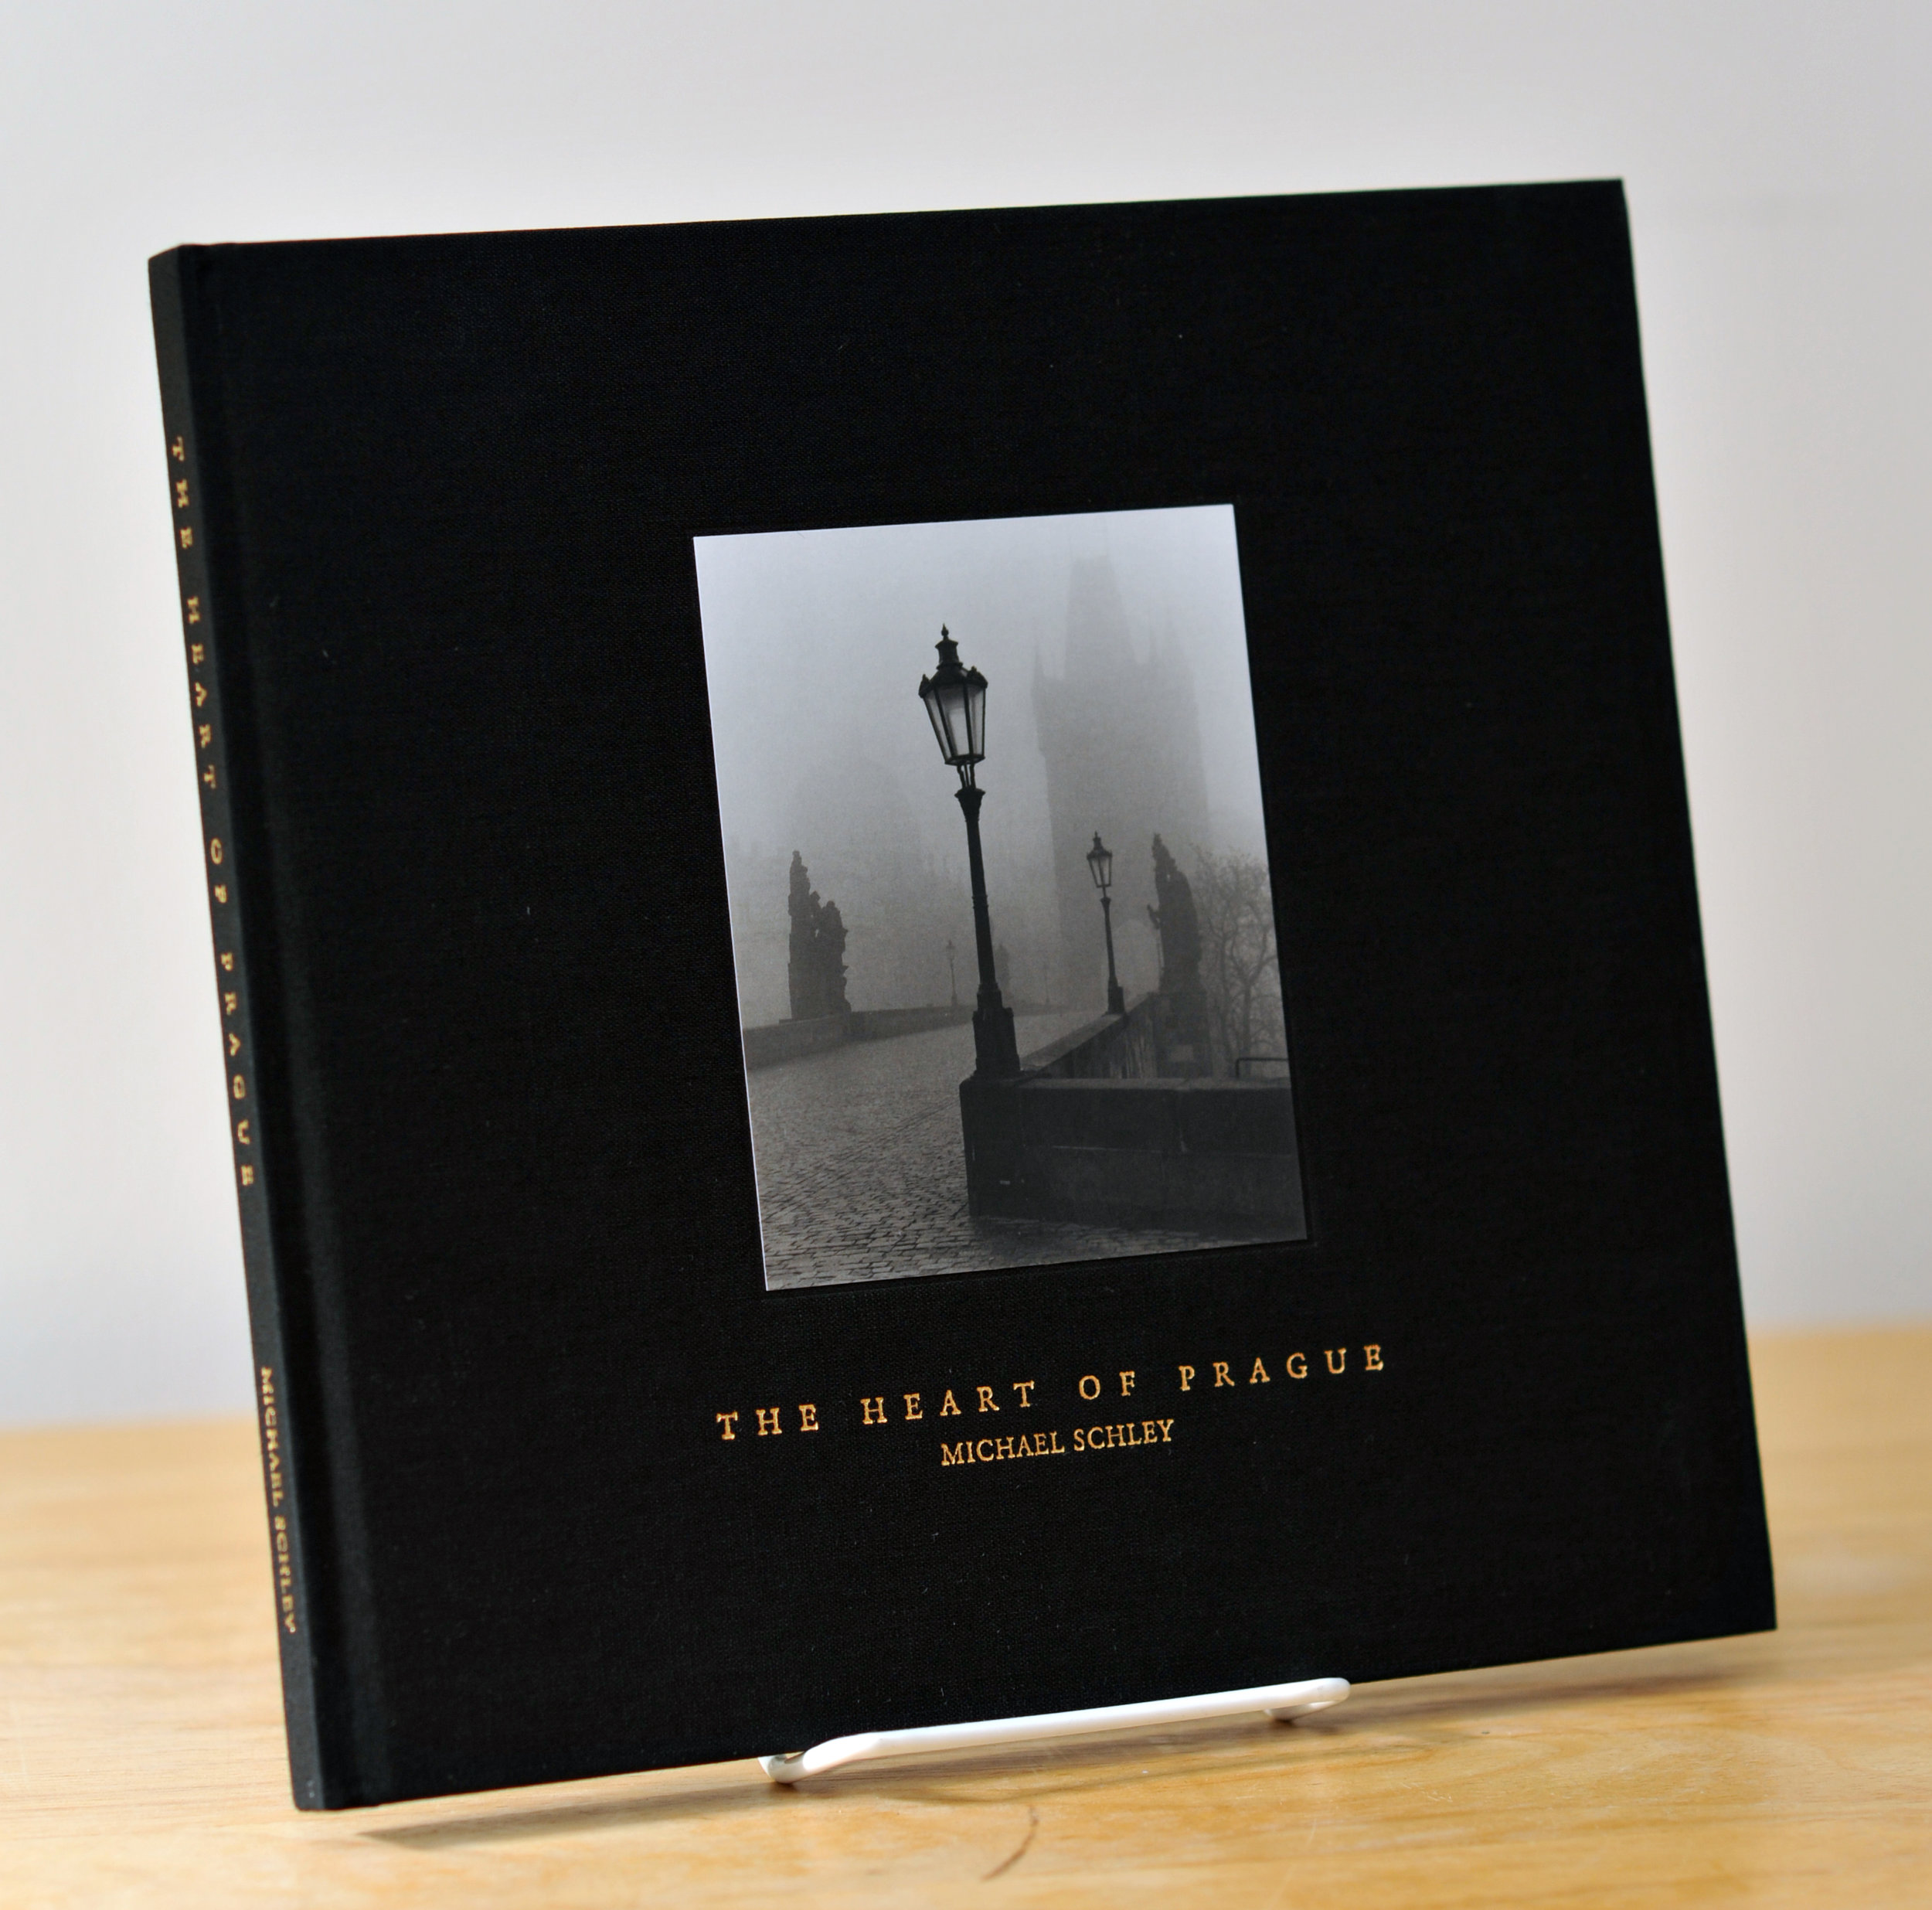 Limited edition hardcover photography book by Michael Schley